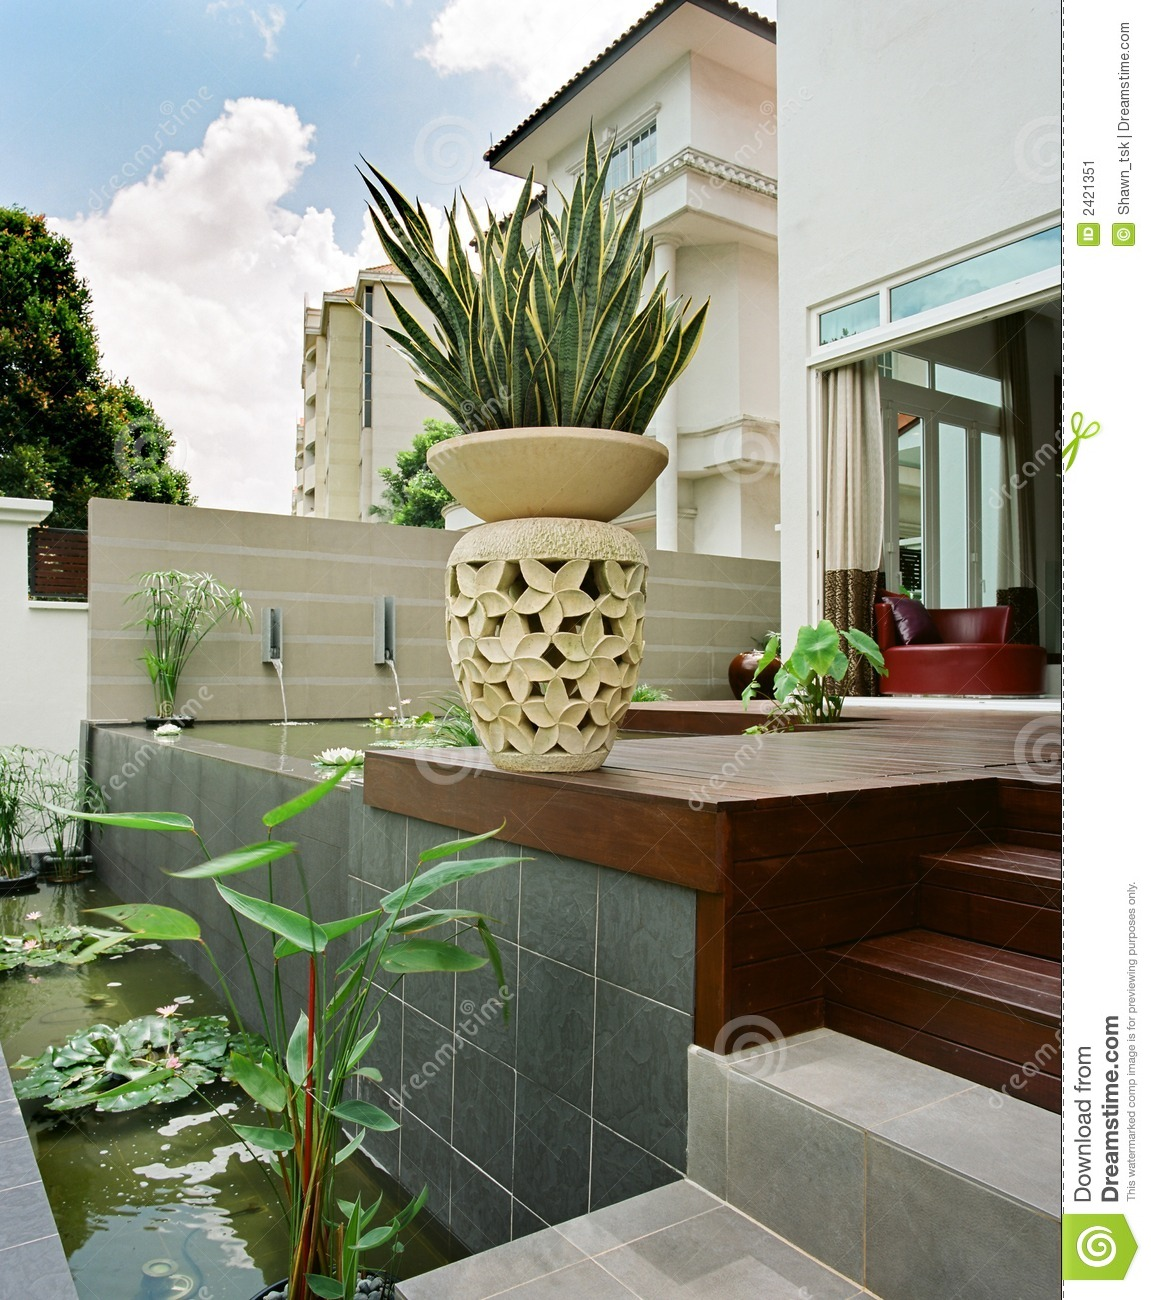 Interior Design Garden Stock Image Image 2421351